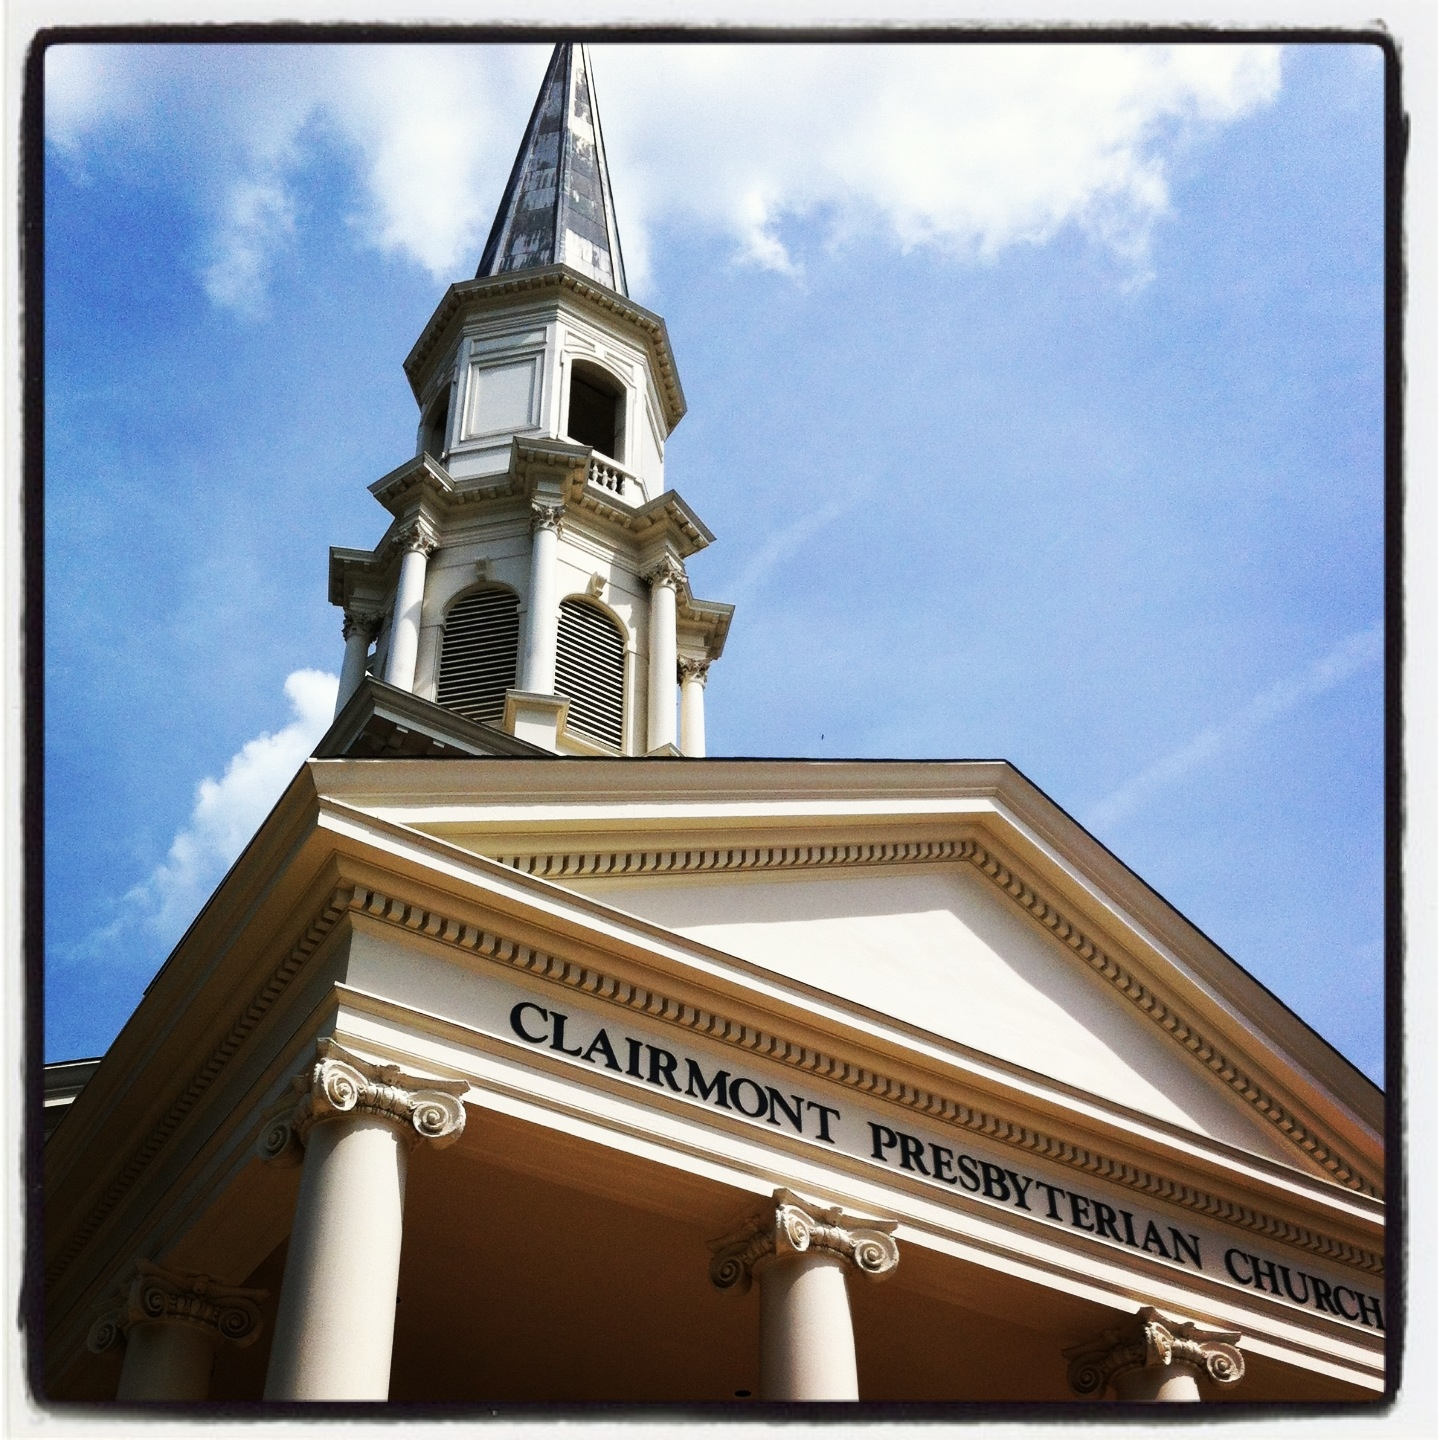 Clairmont Presbyterian Church